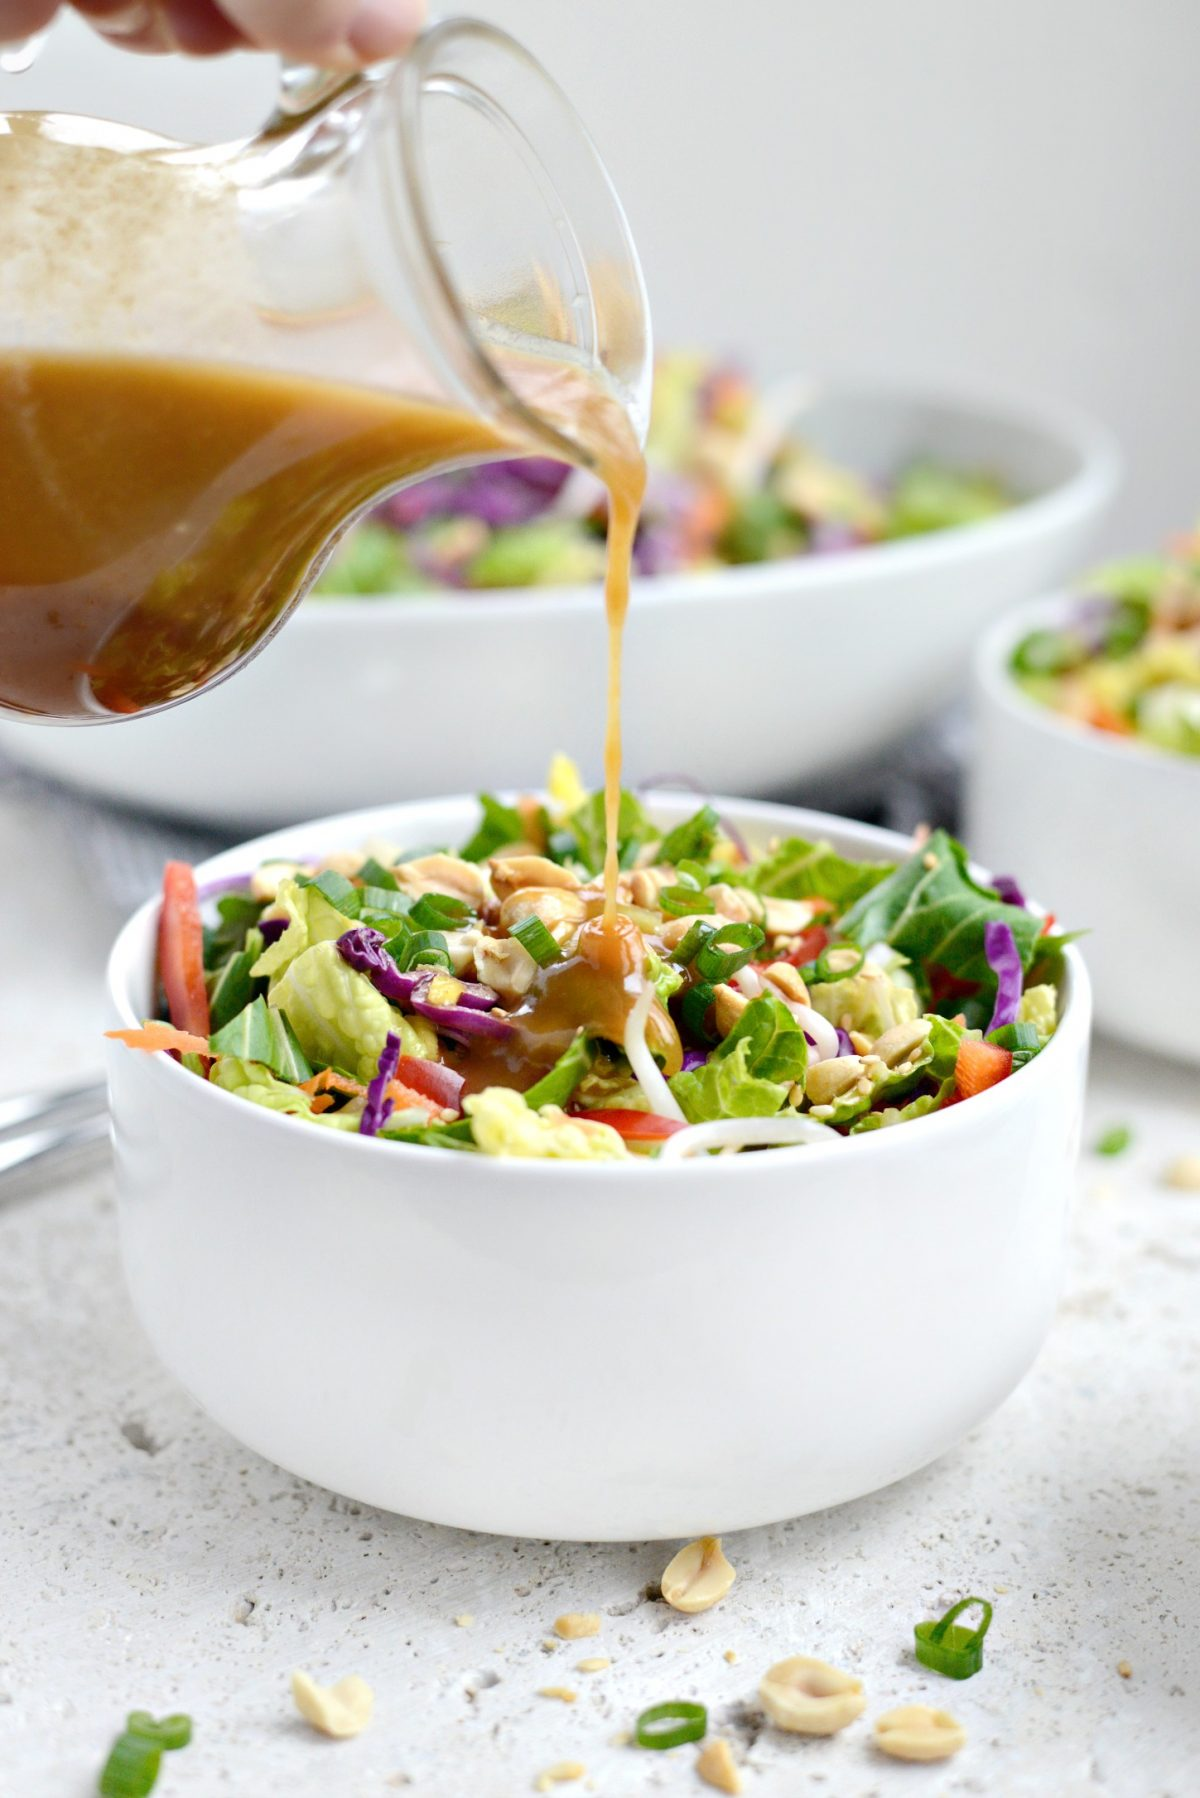 Crunchy Asian Veggie Salad with Honey Ginger Peanut Dressing l SimplyScratch.com